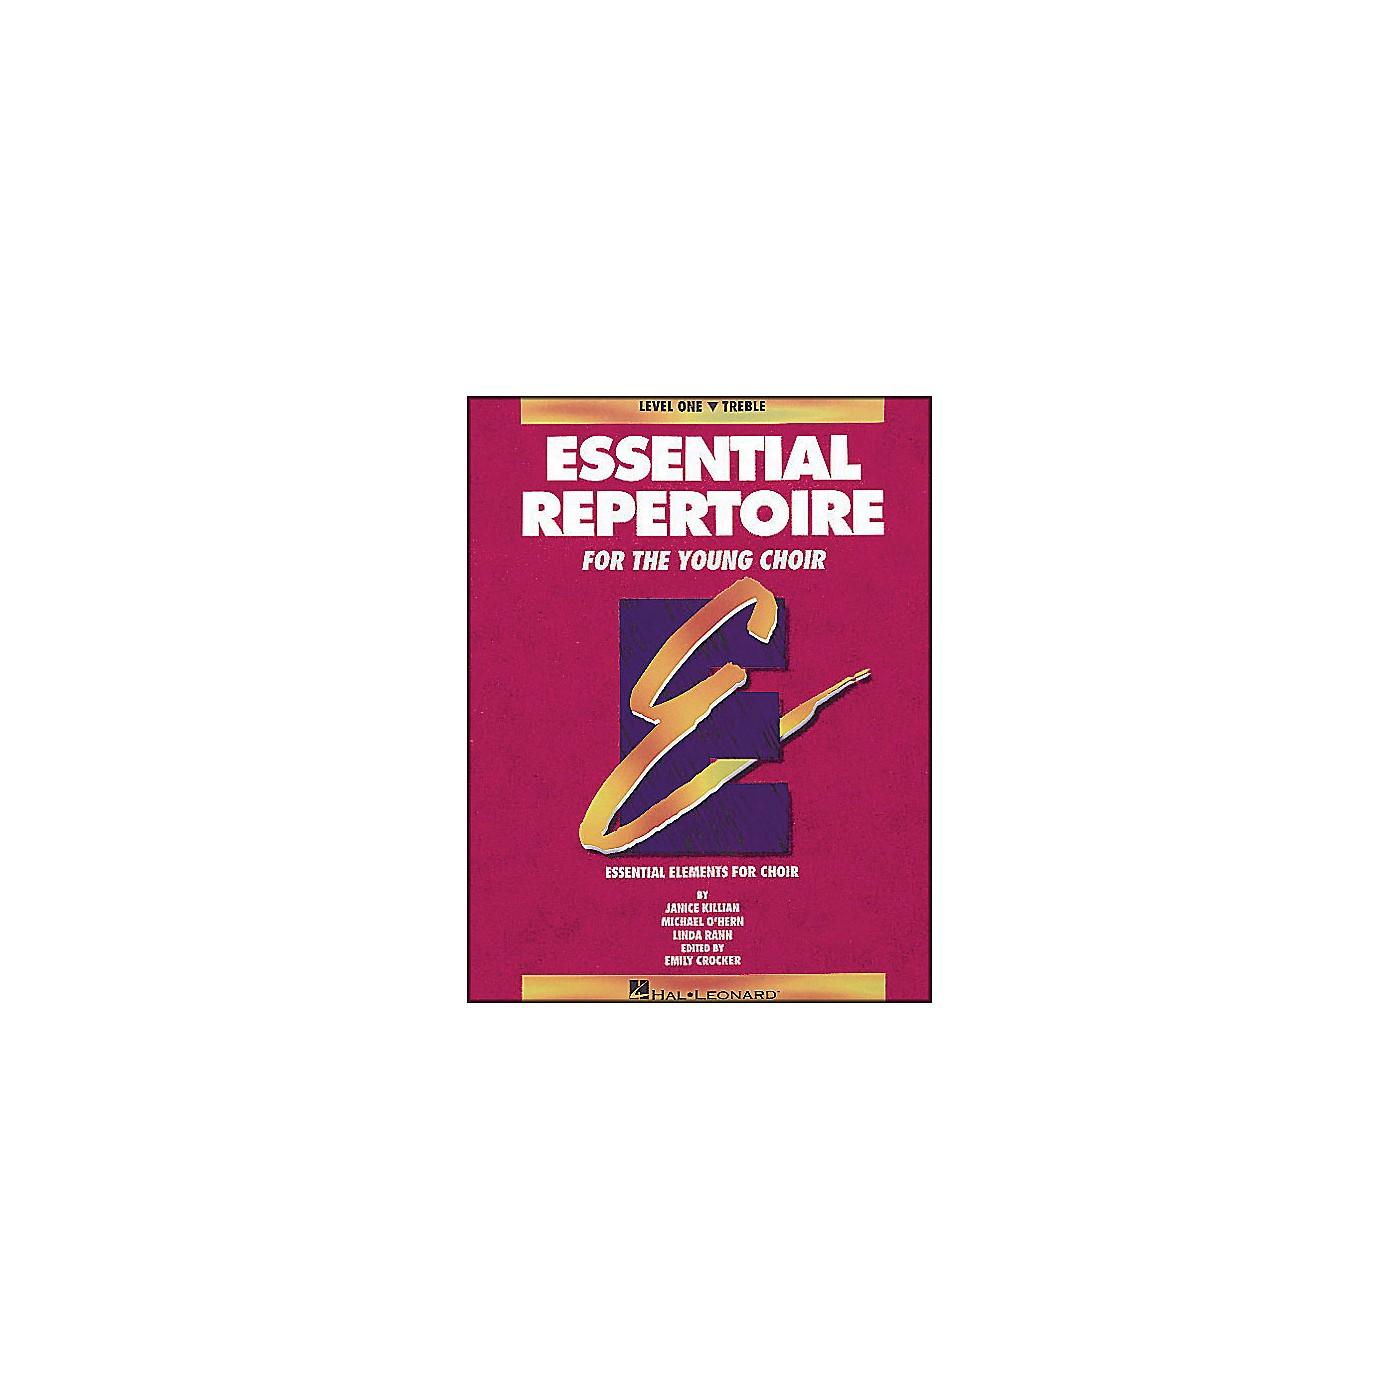 Hal Leonard Essential Repertoire for The Young Choir Level One (1) Treble/Student thumbnail